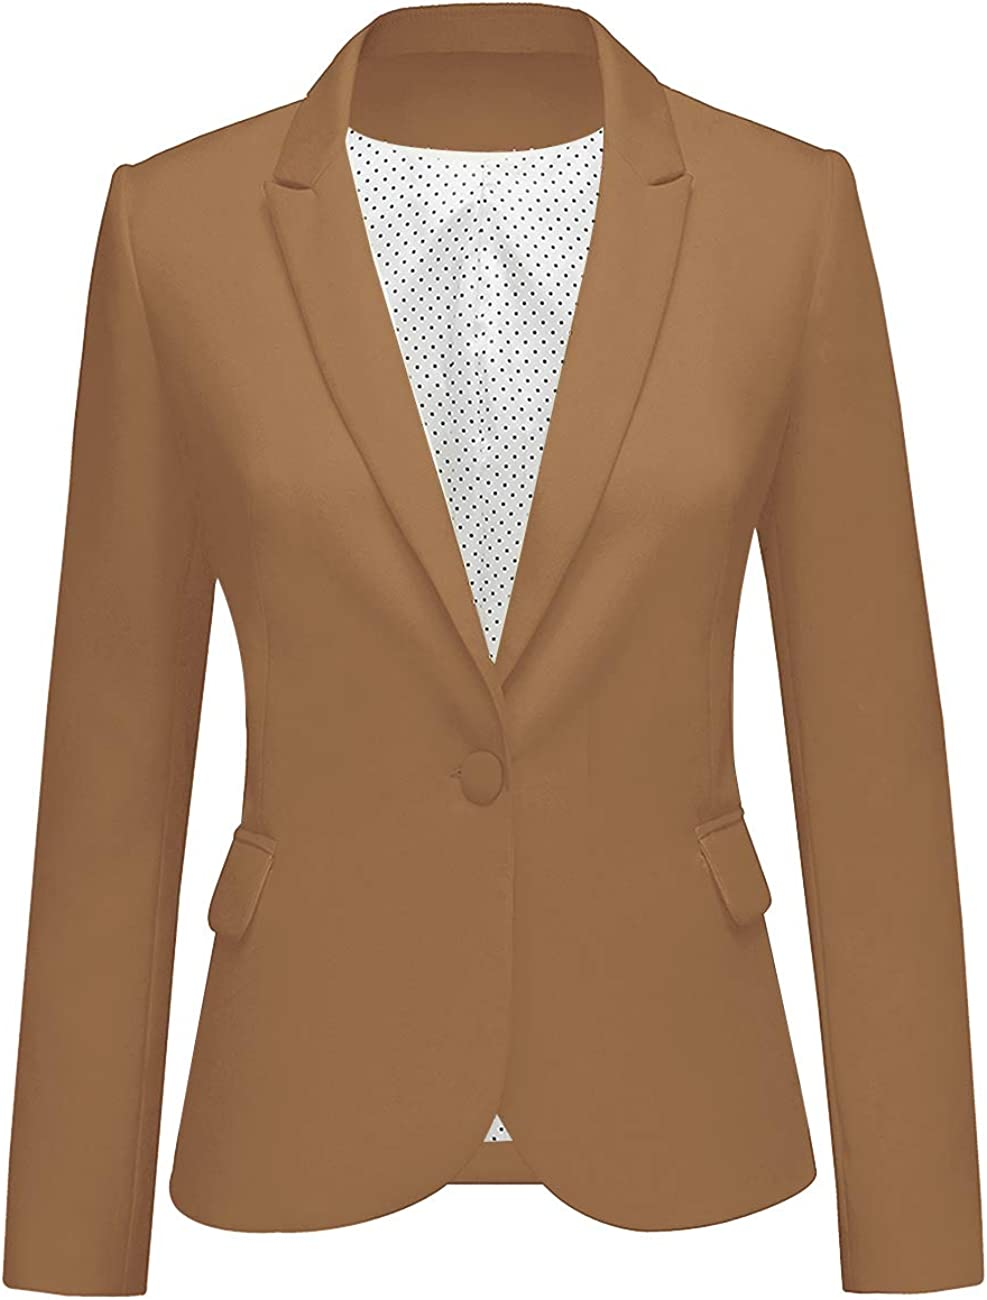 LookbookStore Womens Notched Lapel Pocket Button Work Office Blazer Jacket Suit